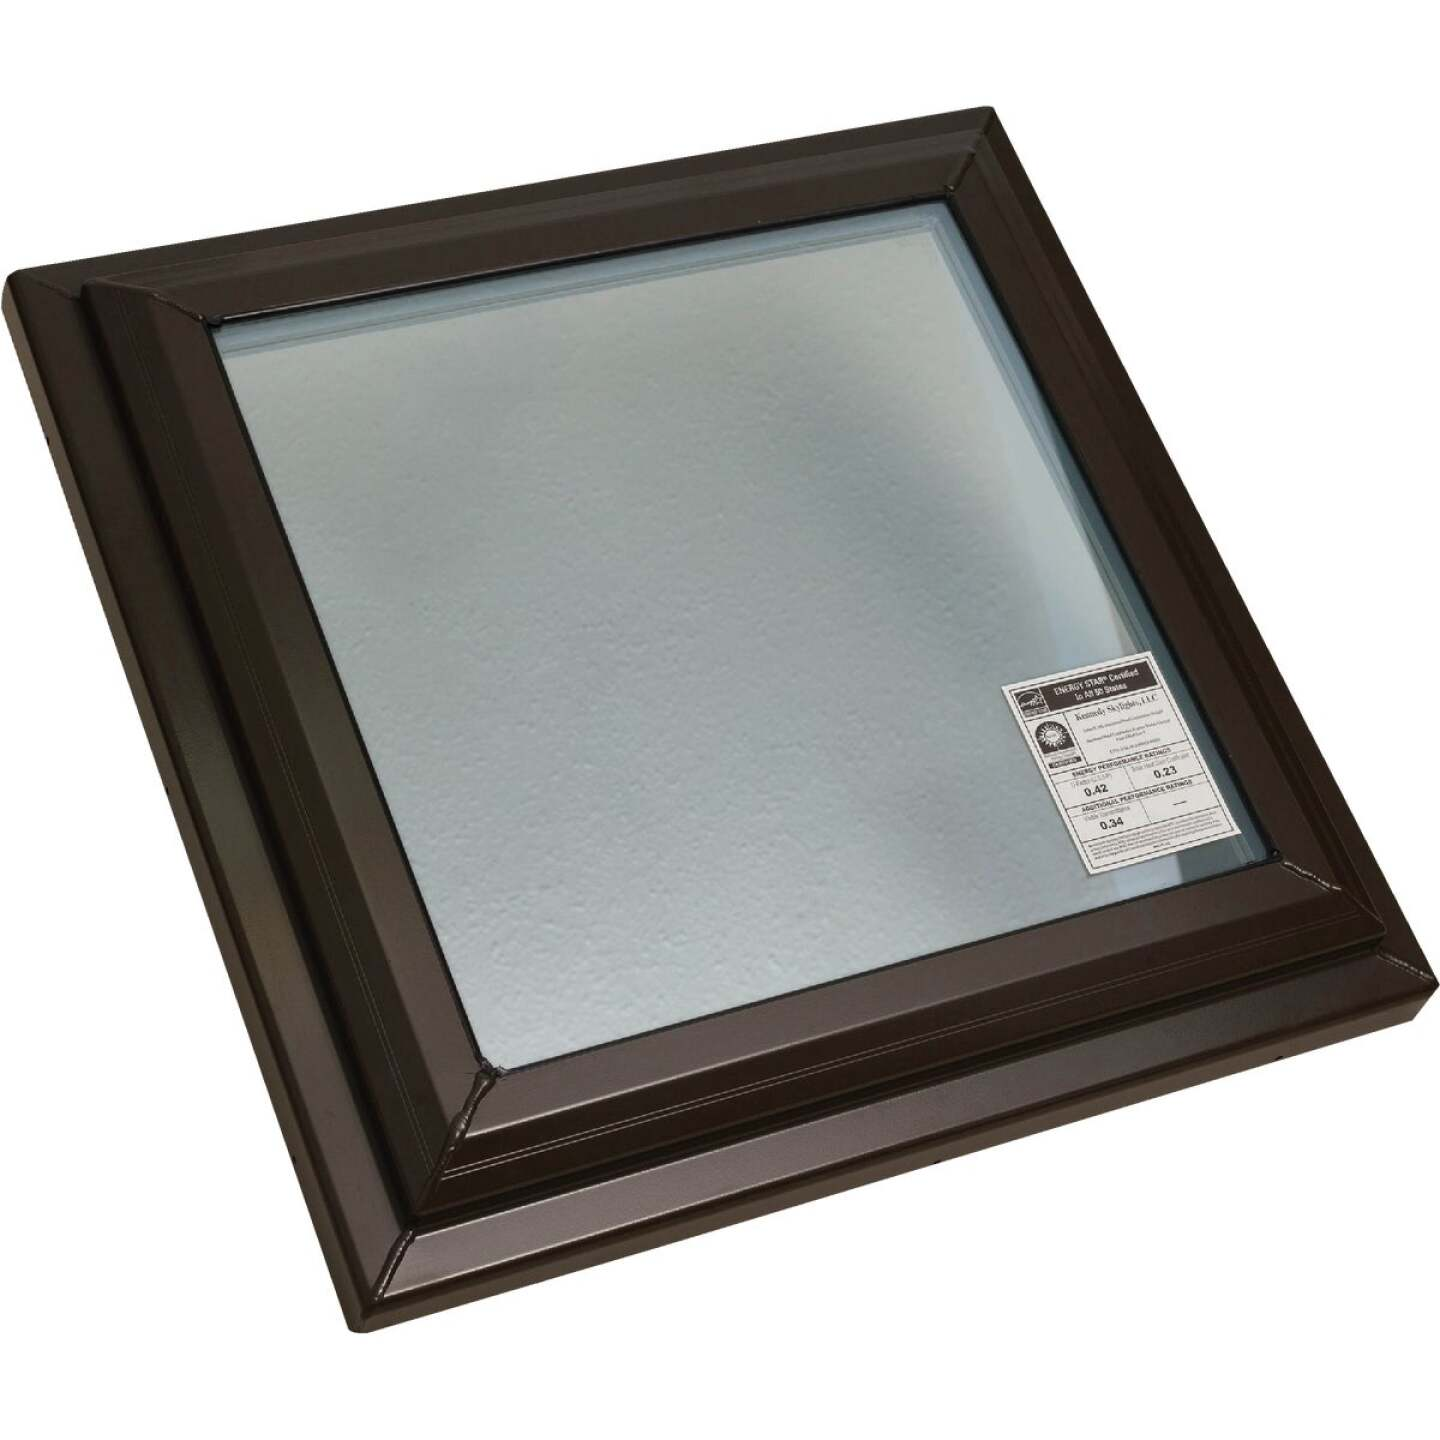 Kennedy Skylights 24 In. x 24 In. Bronze Fixed Glass Skylight Image 1